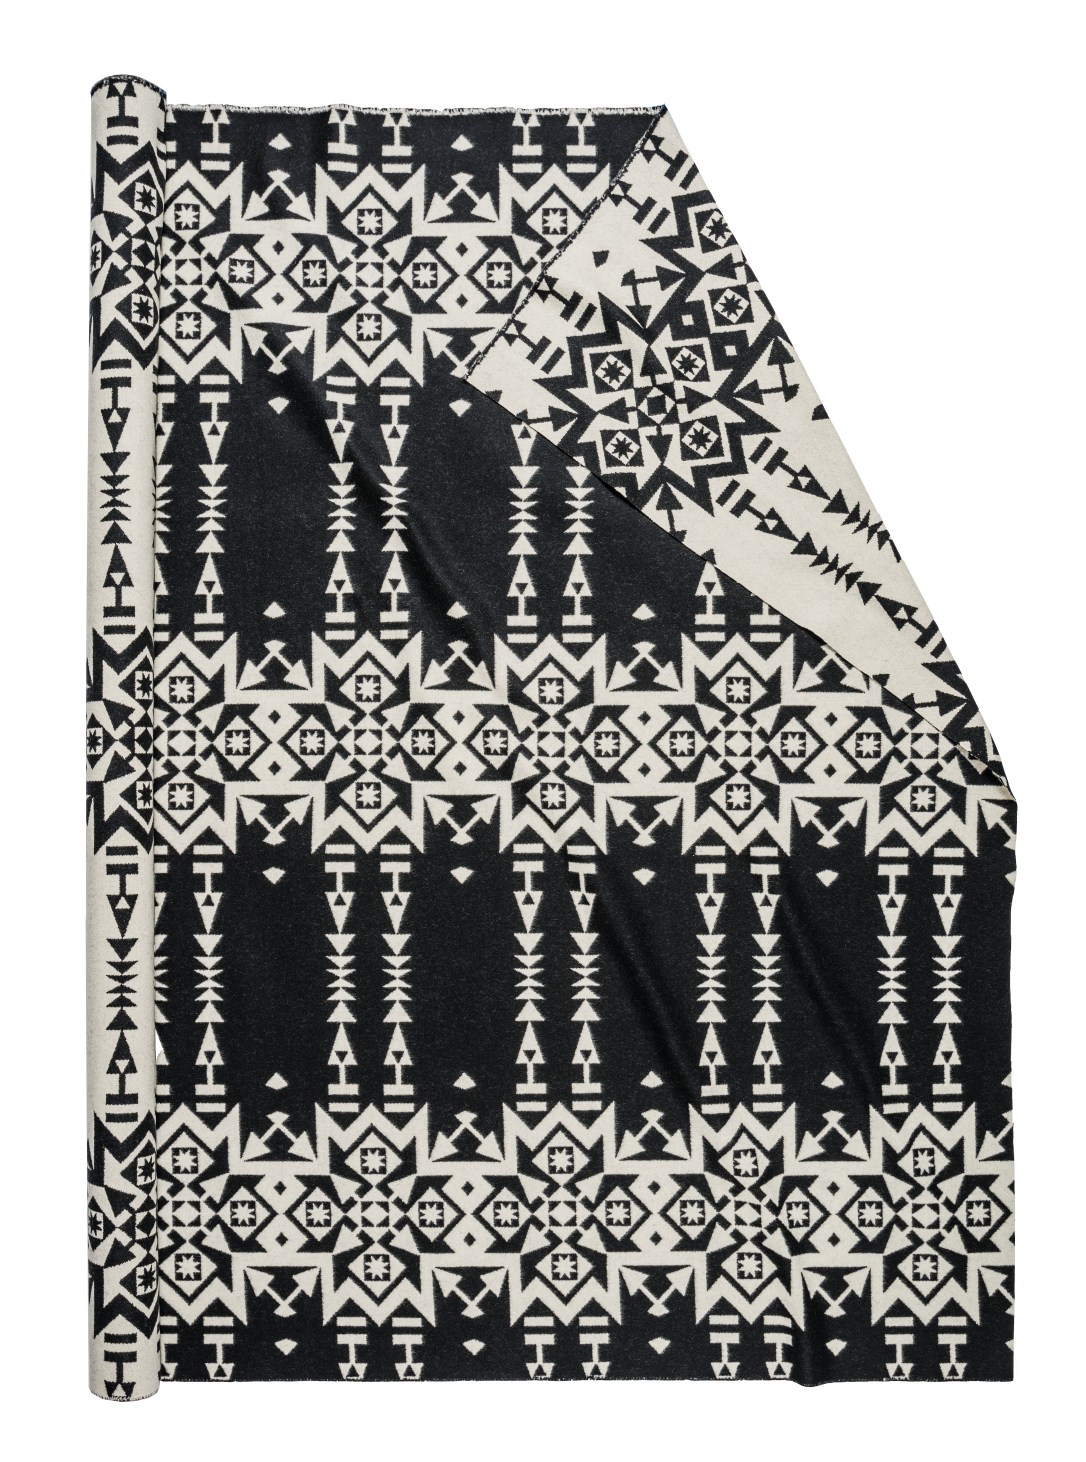 A roll of Pendleton fabric in Condensed White, with a black background and pattern of white stars and arrow chains.